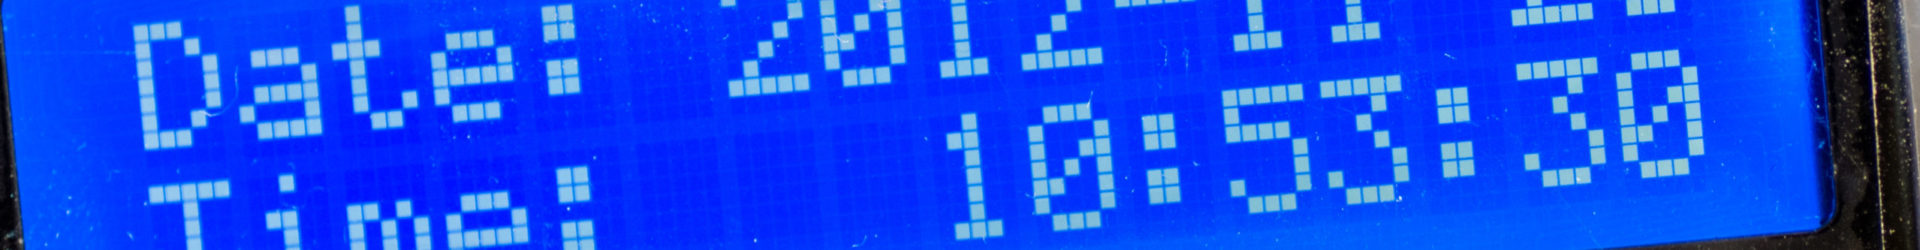 3 Digit Binary Clock